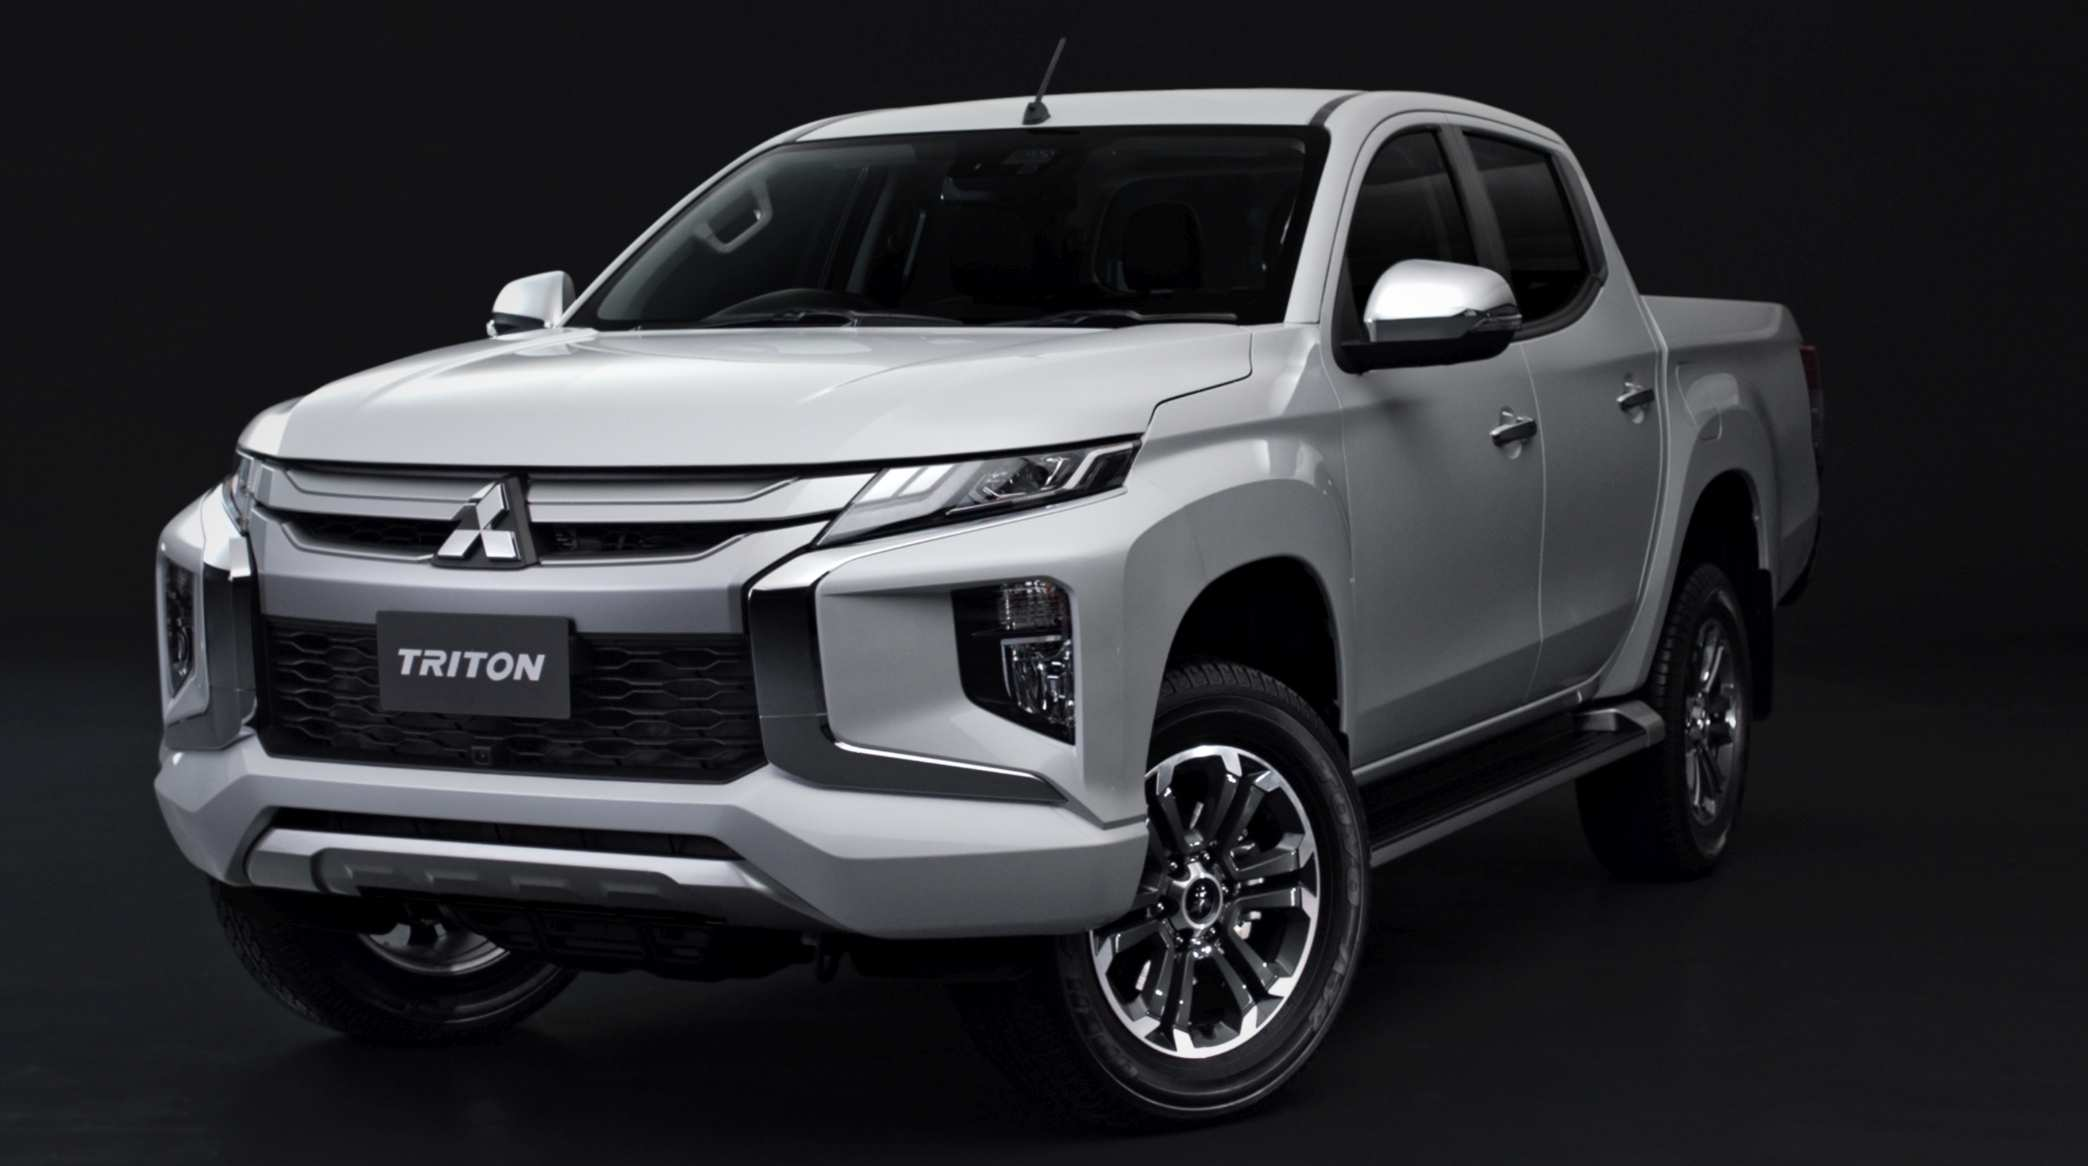 88 Best Review 2019 Mitsubishi Triton Specs Research New for 2019 Mitsubishi Triton Specs